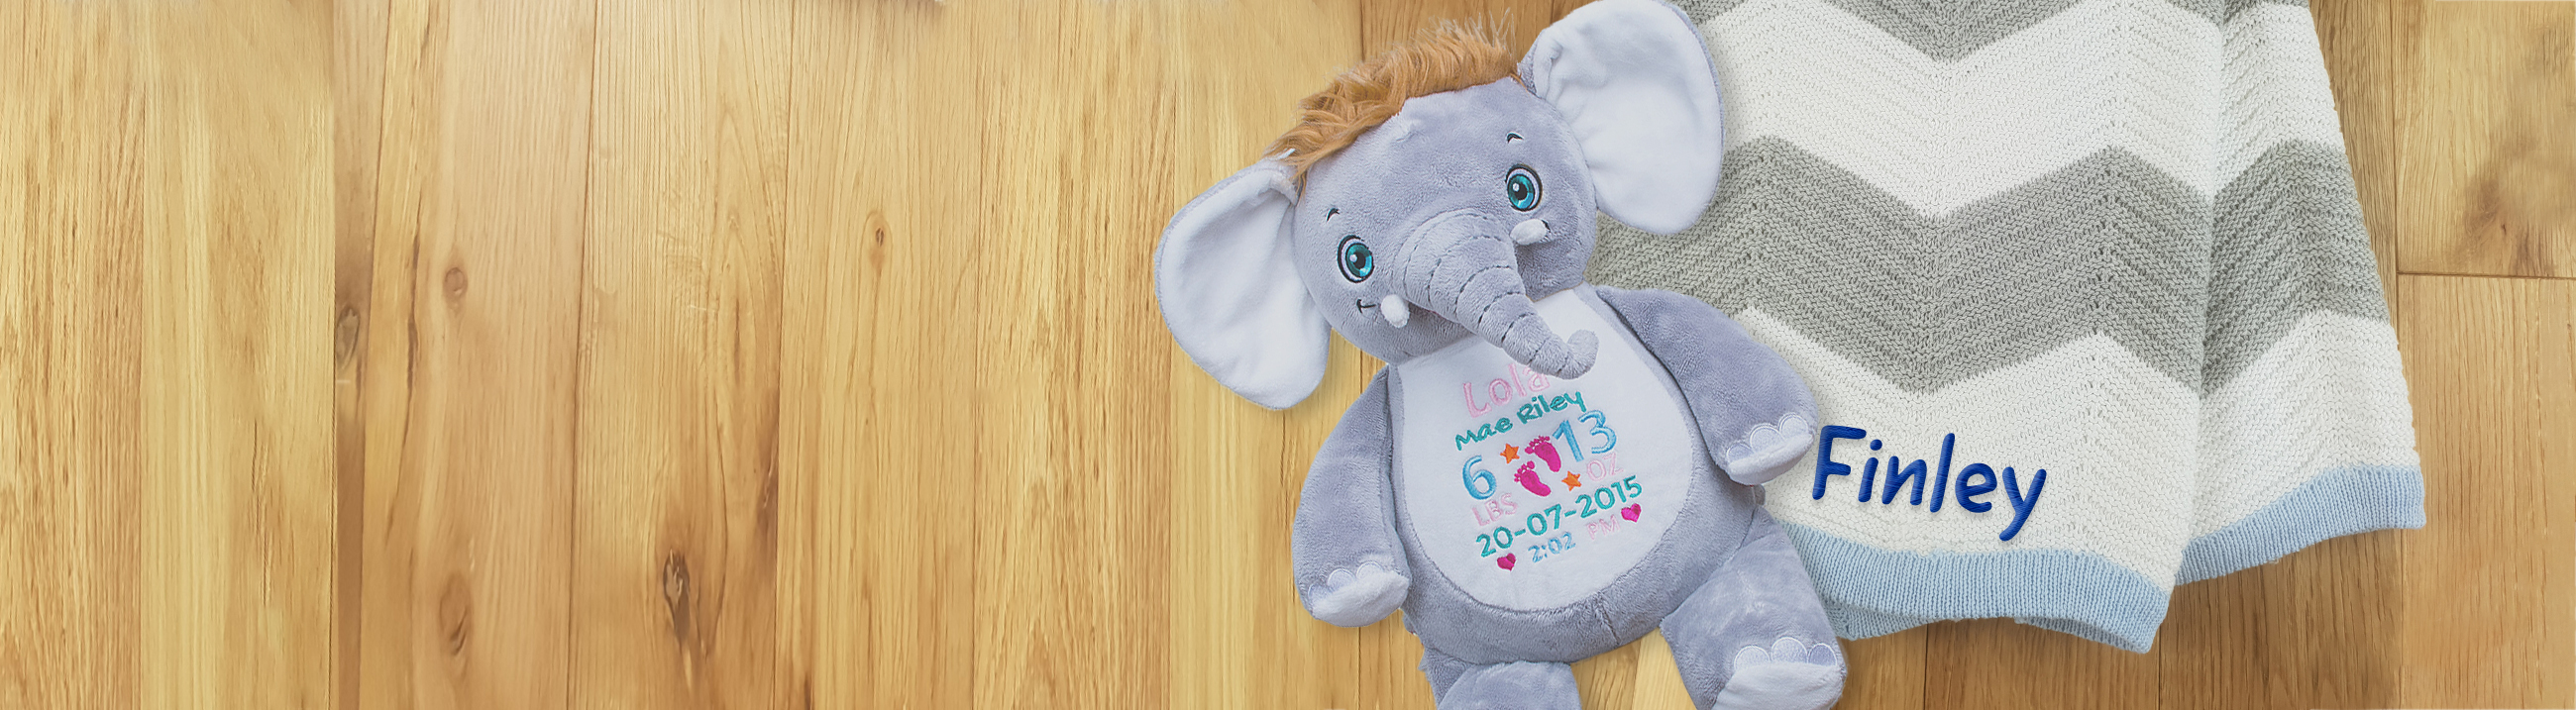 Kids Club Personalised Blankets, Teddies and more